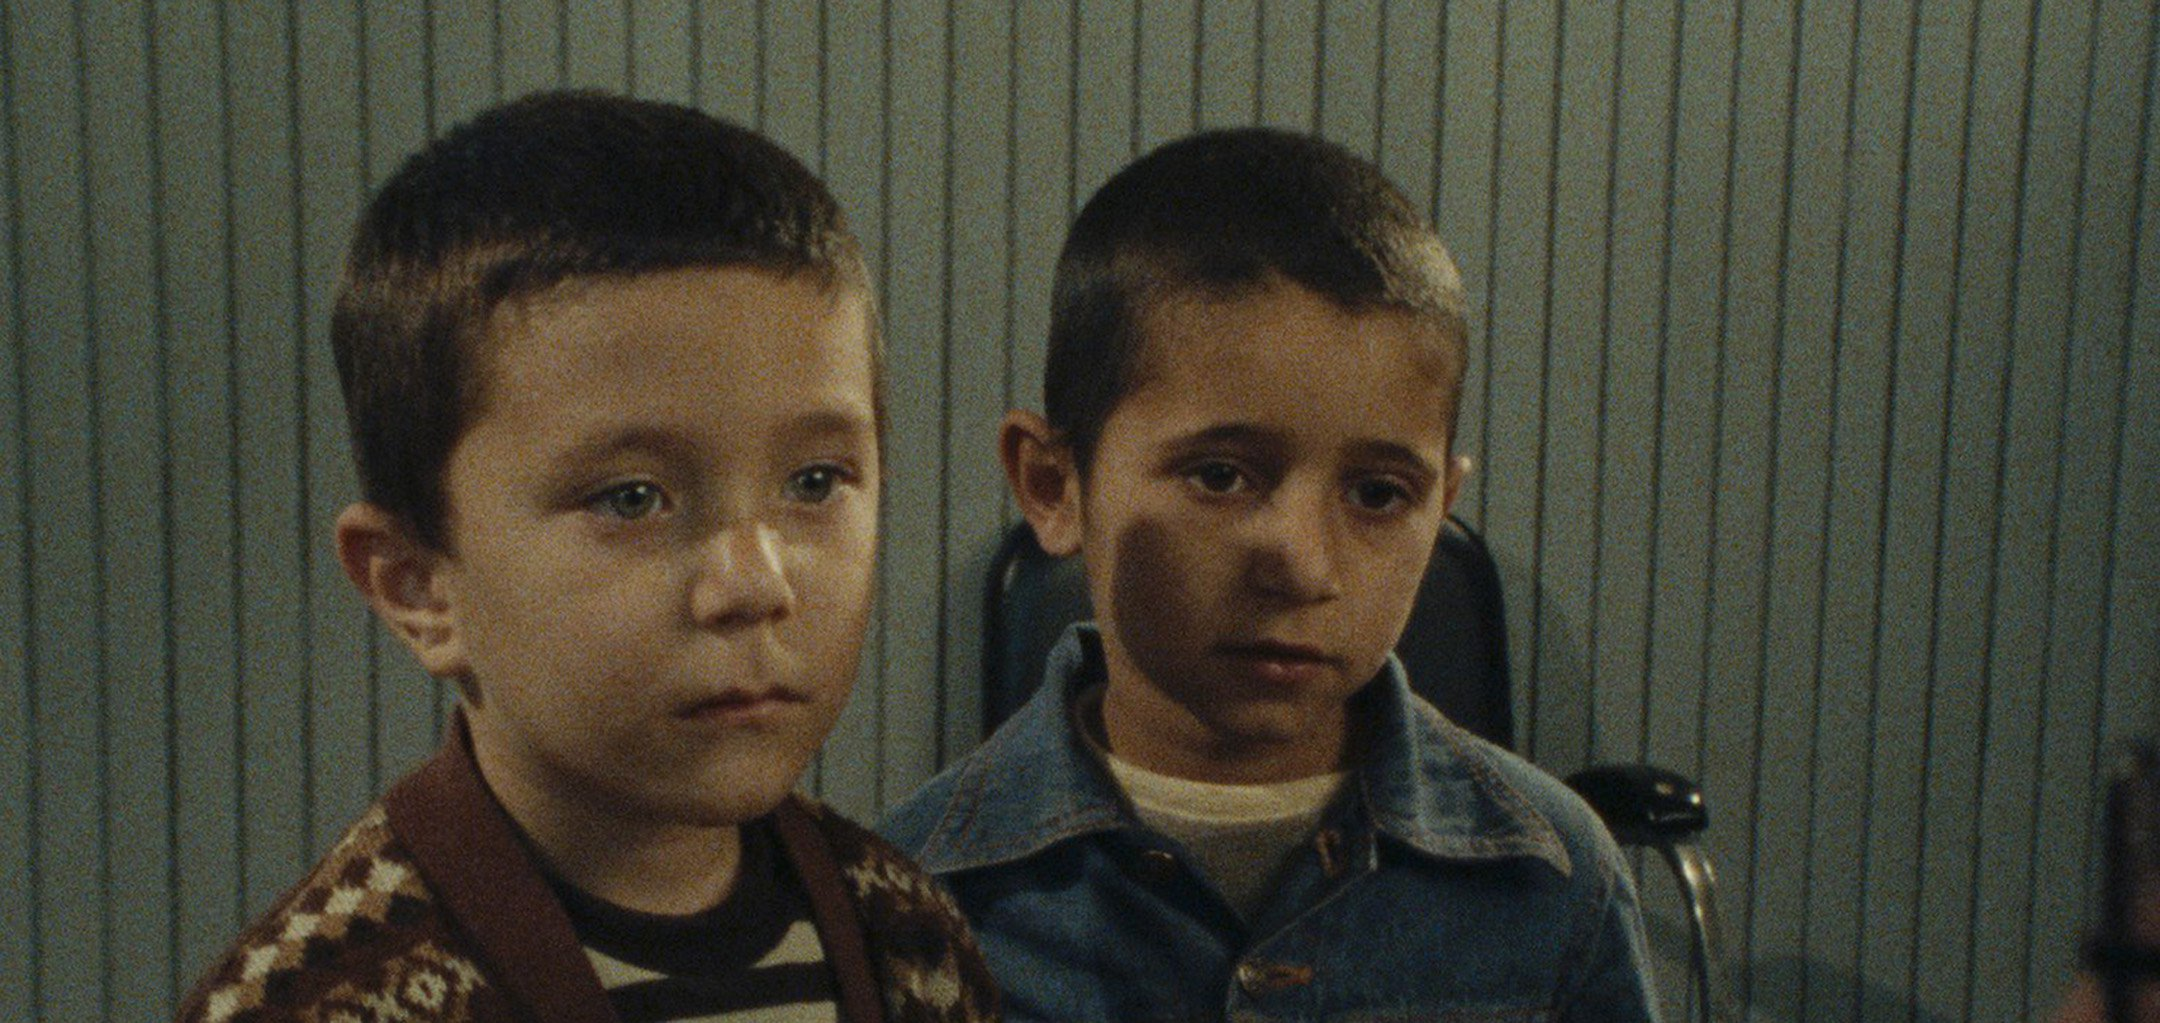 Two young boys featured in First Graders (1985)